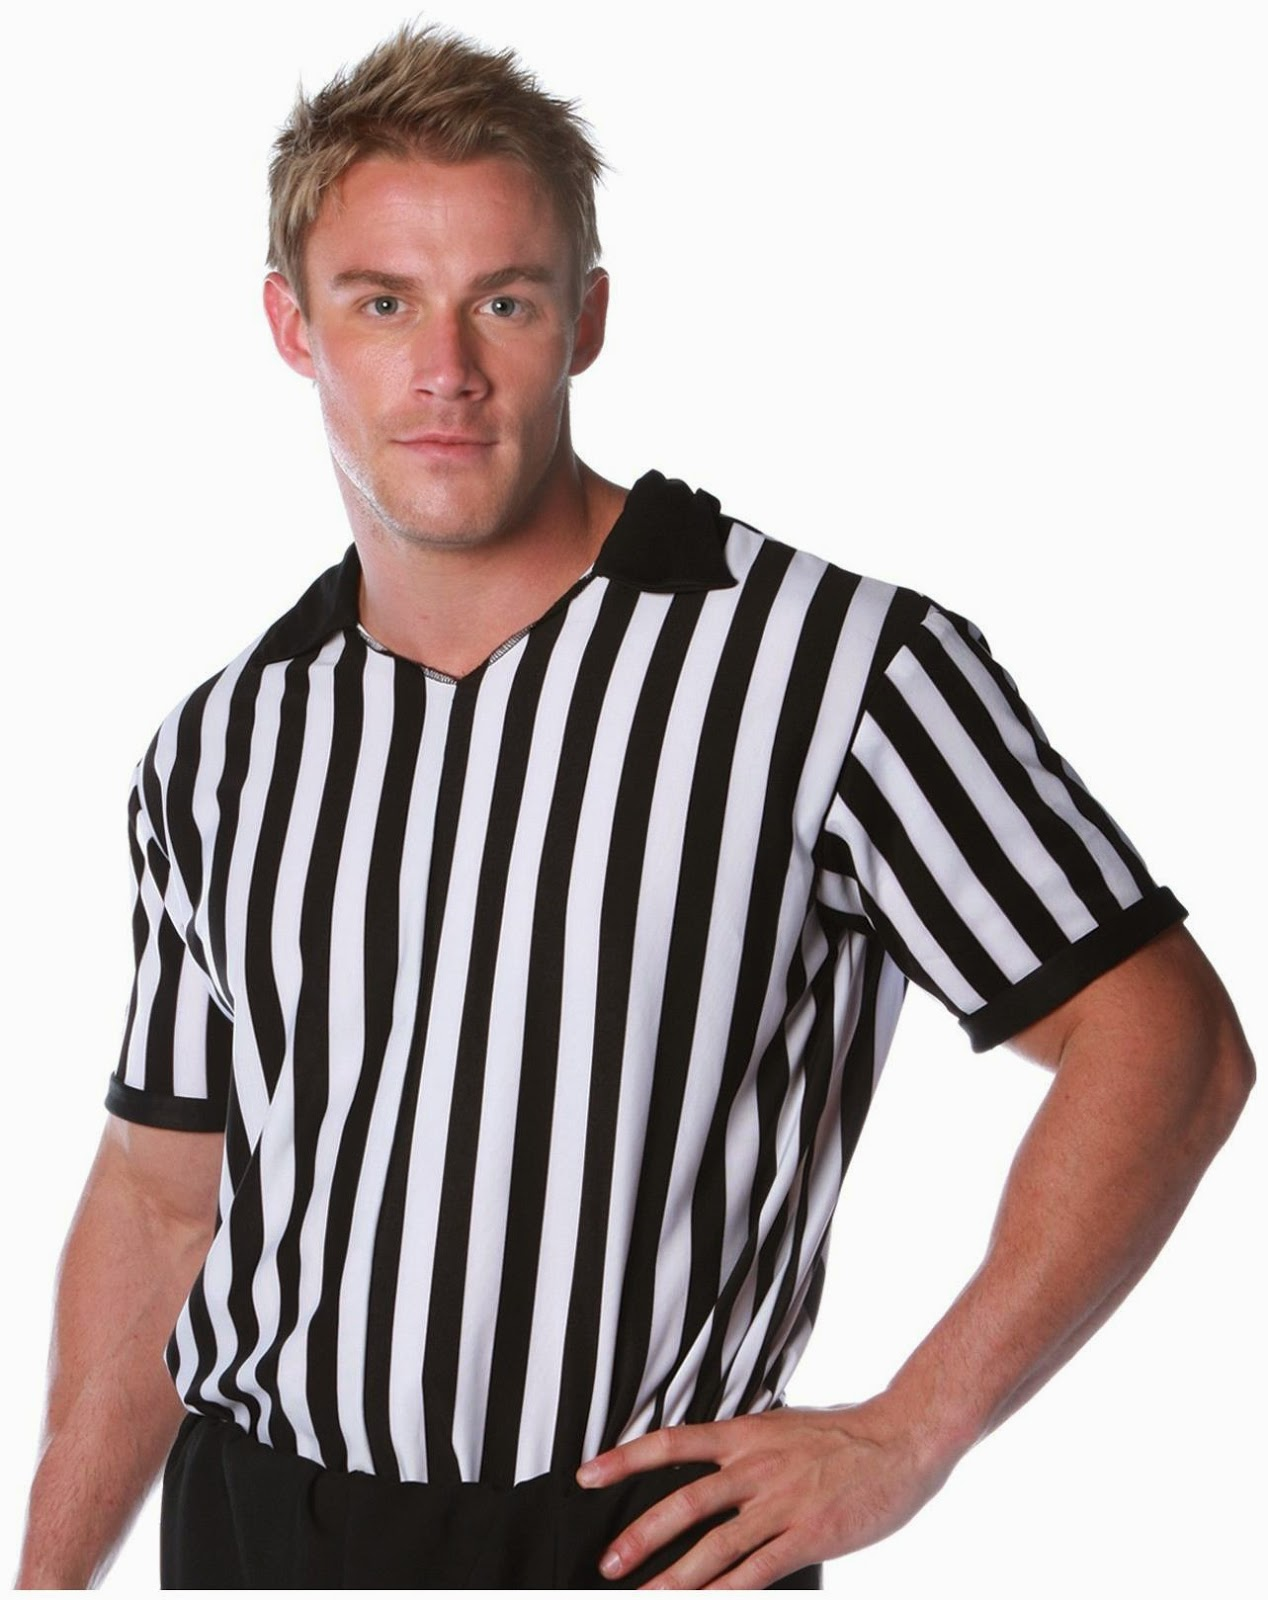 Men's Referee Shirt Adult Costume for Superbowl